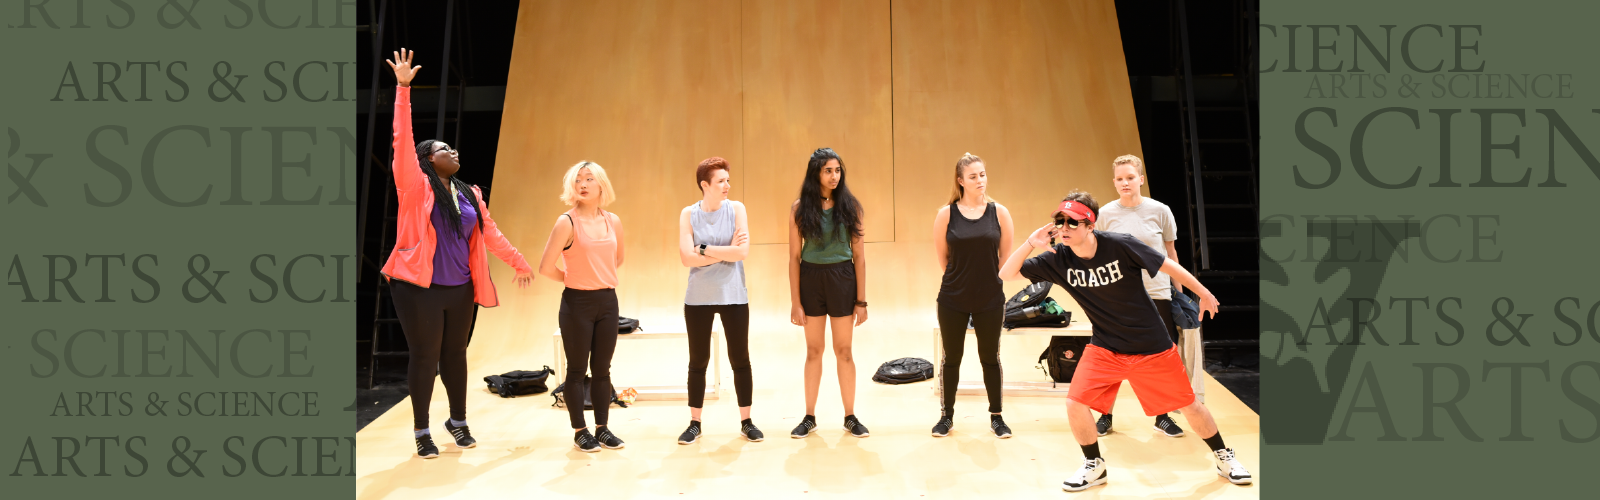 Theatre production inspired by Vanderbilt women bowlers